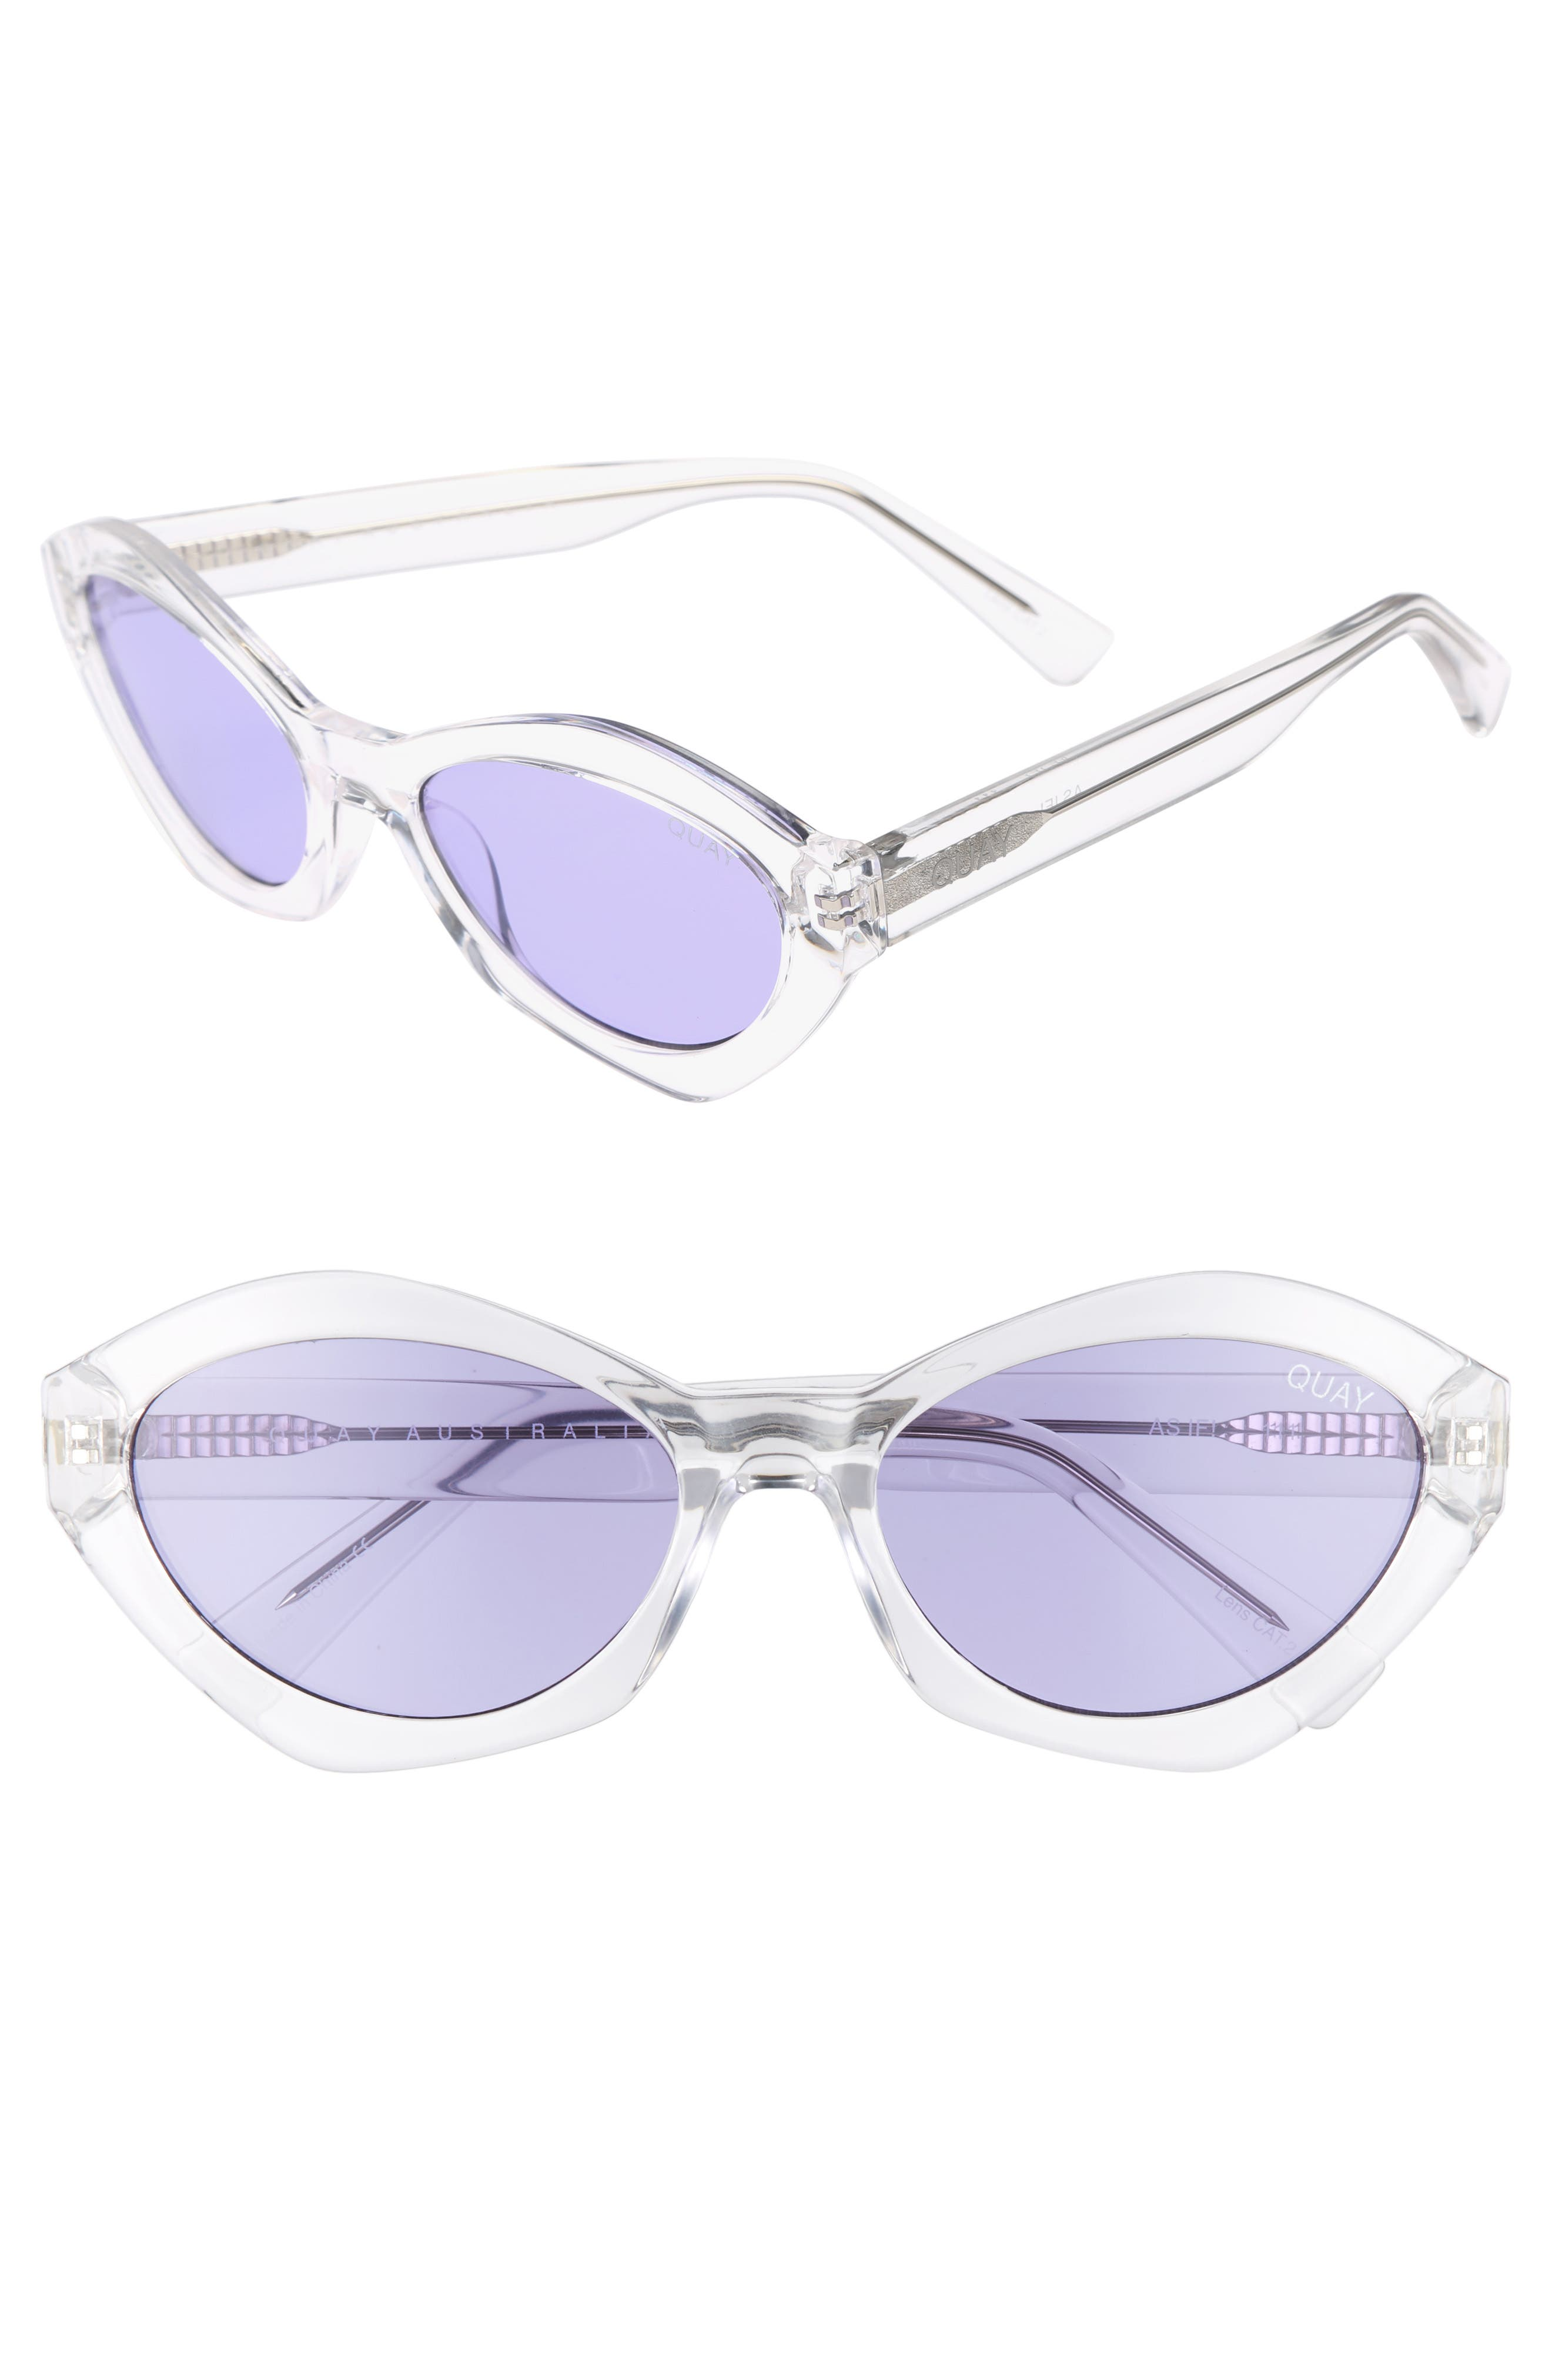 54mm As If Oval Sunglasses,                         Main,                         color, 100